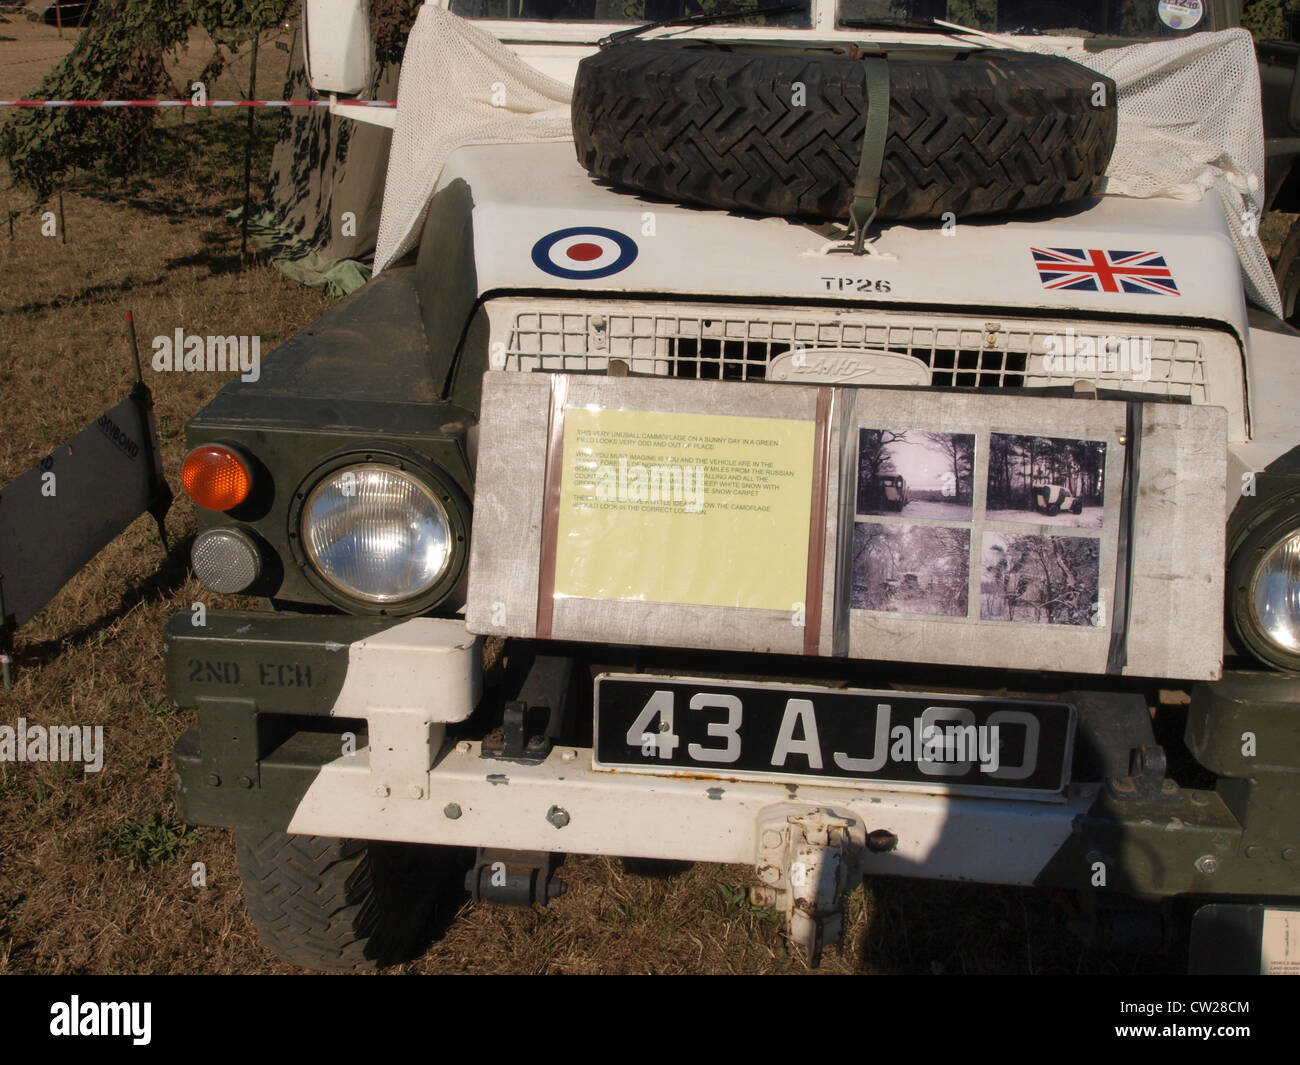 LAnd Rover S111 Lightweight Airportable - Stock Image